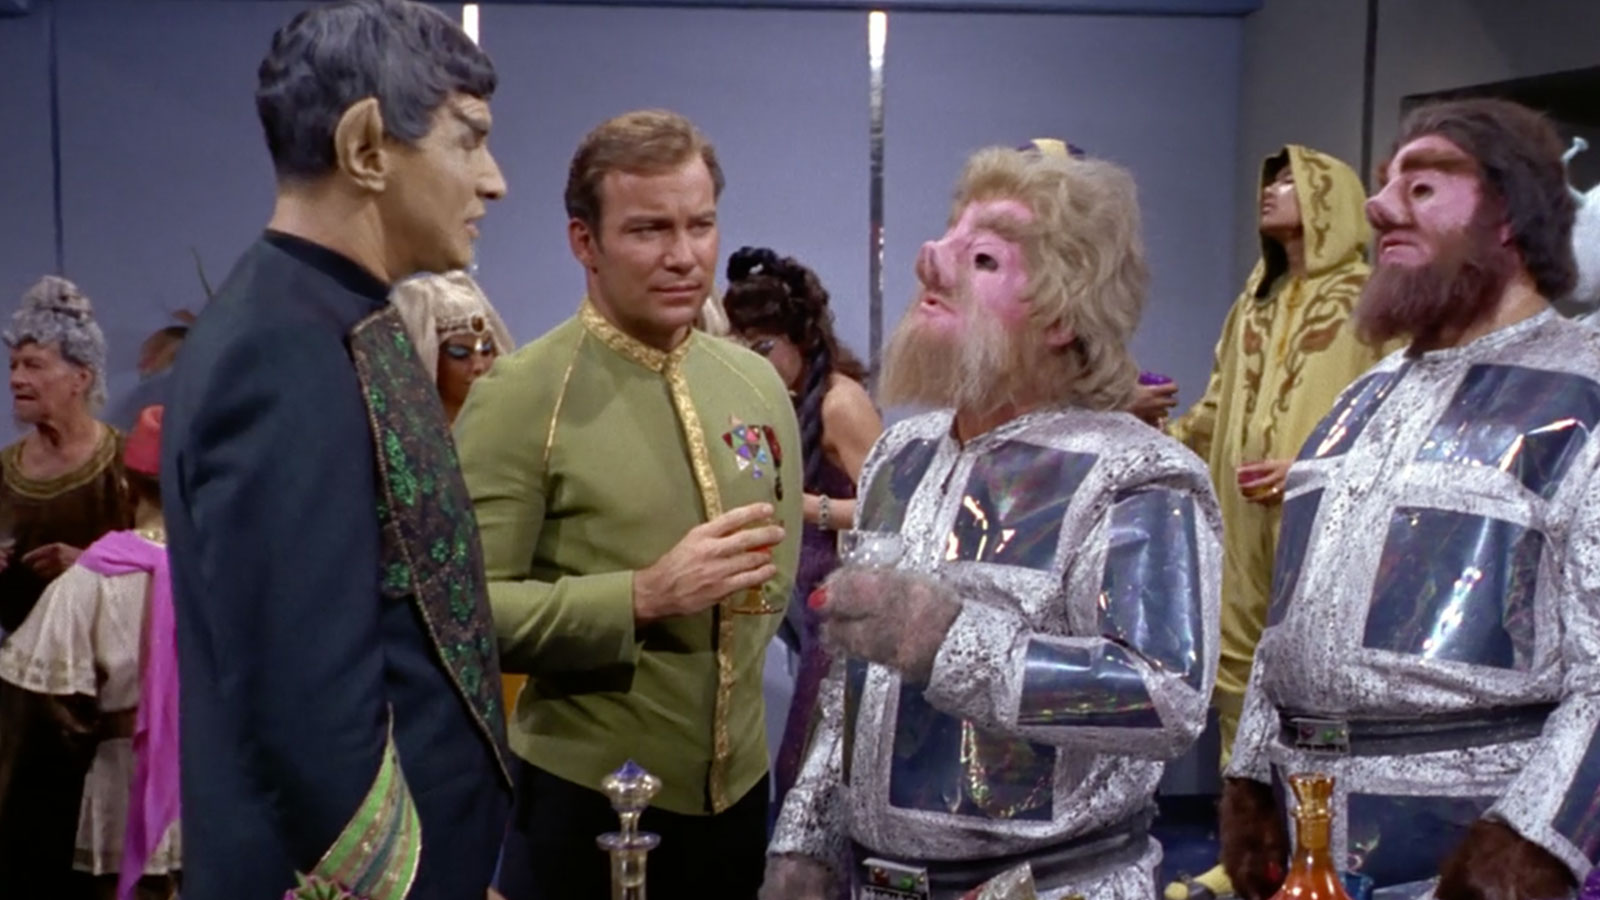 Details On How You Could Have 'Treksgiving' Dinner With William Shatner